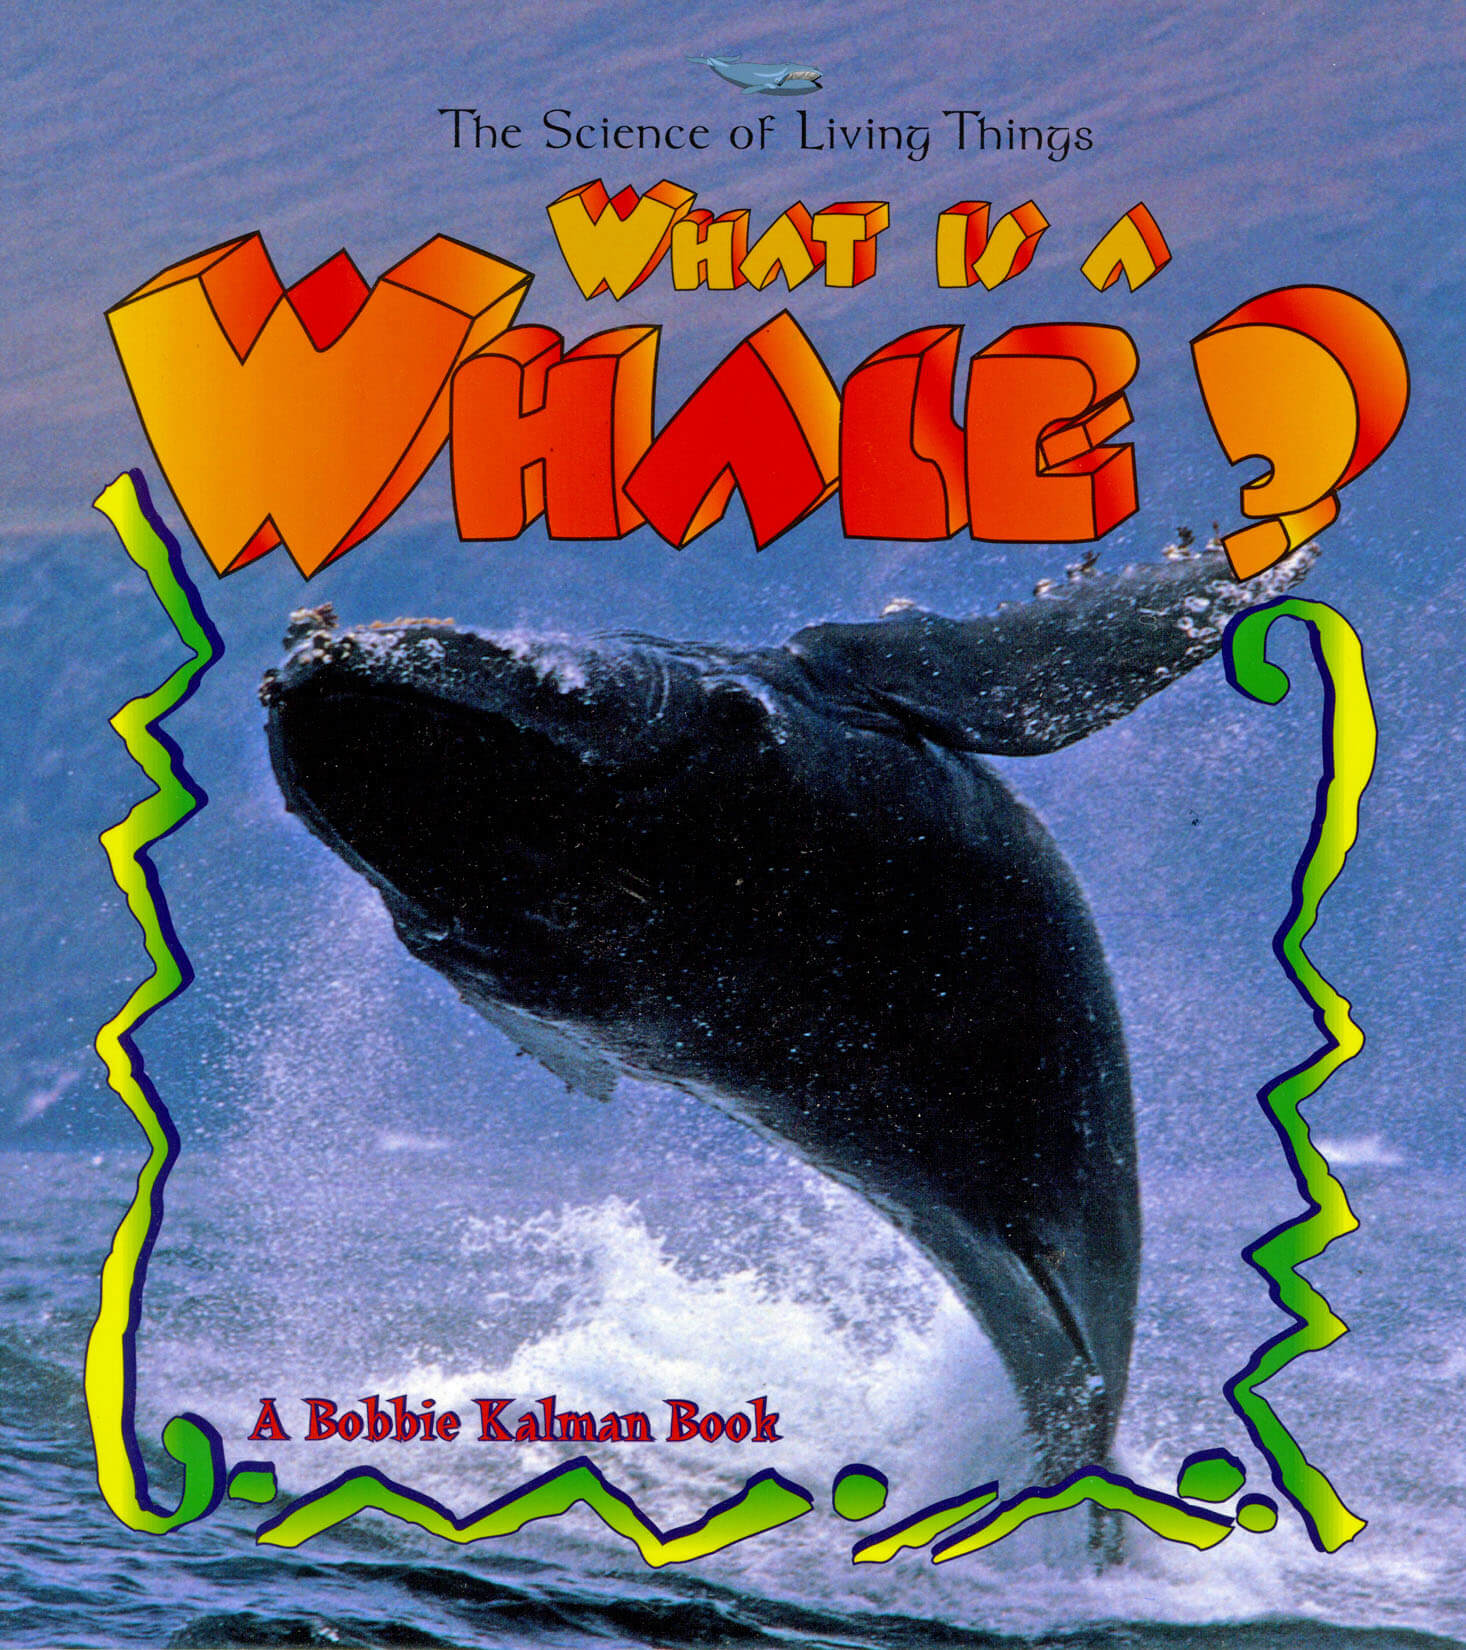 What is a whale